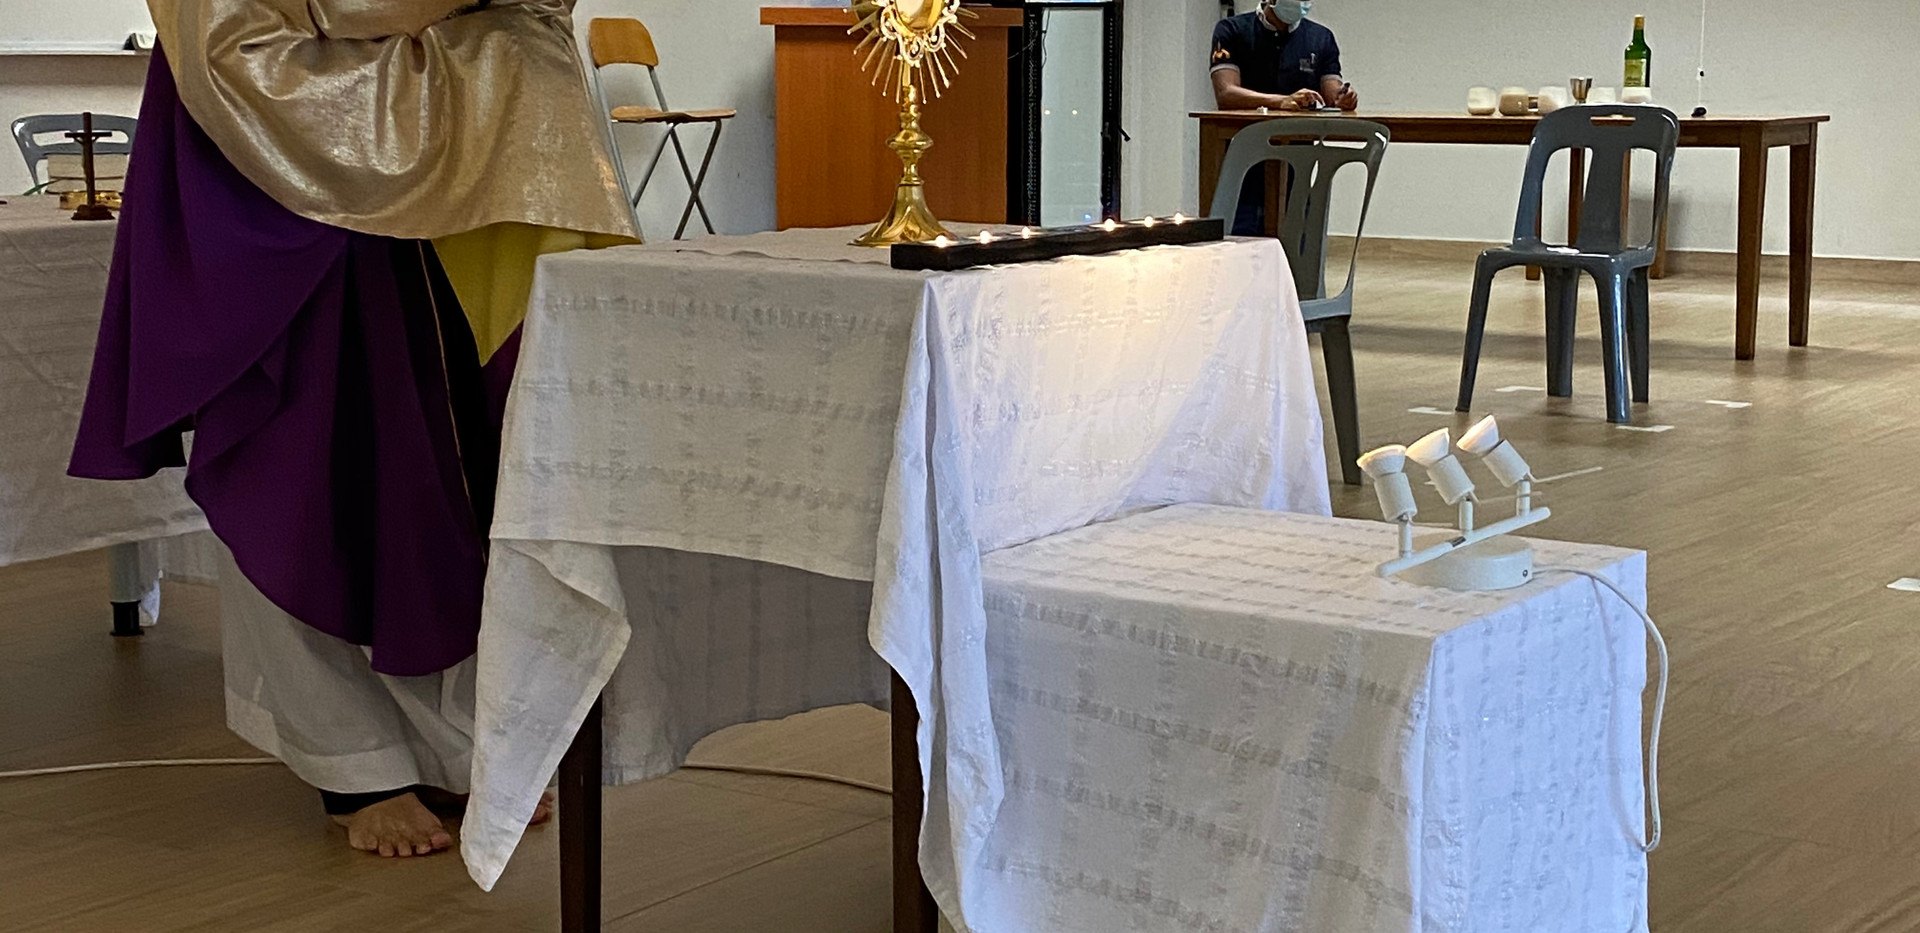 Images from our Jubilee Prayerthon